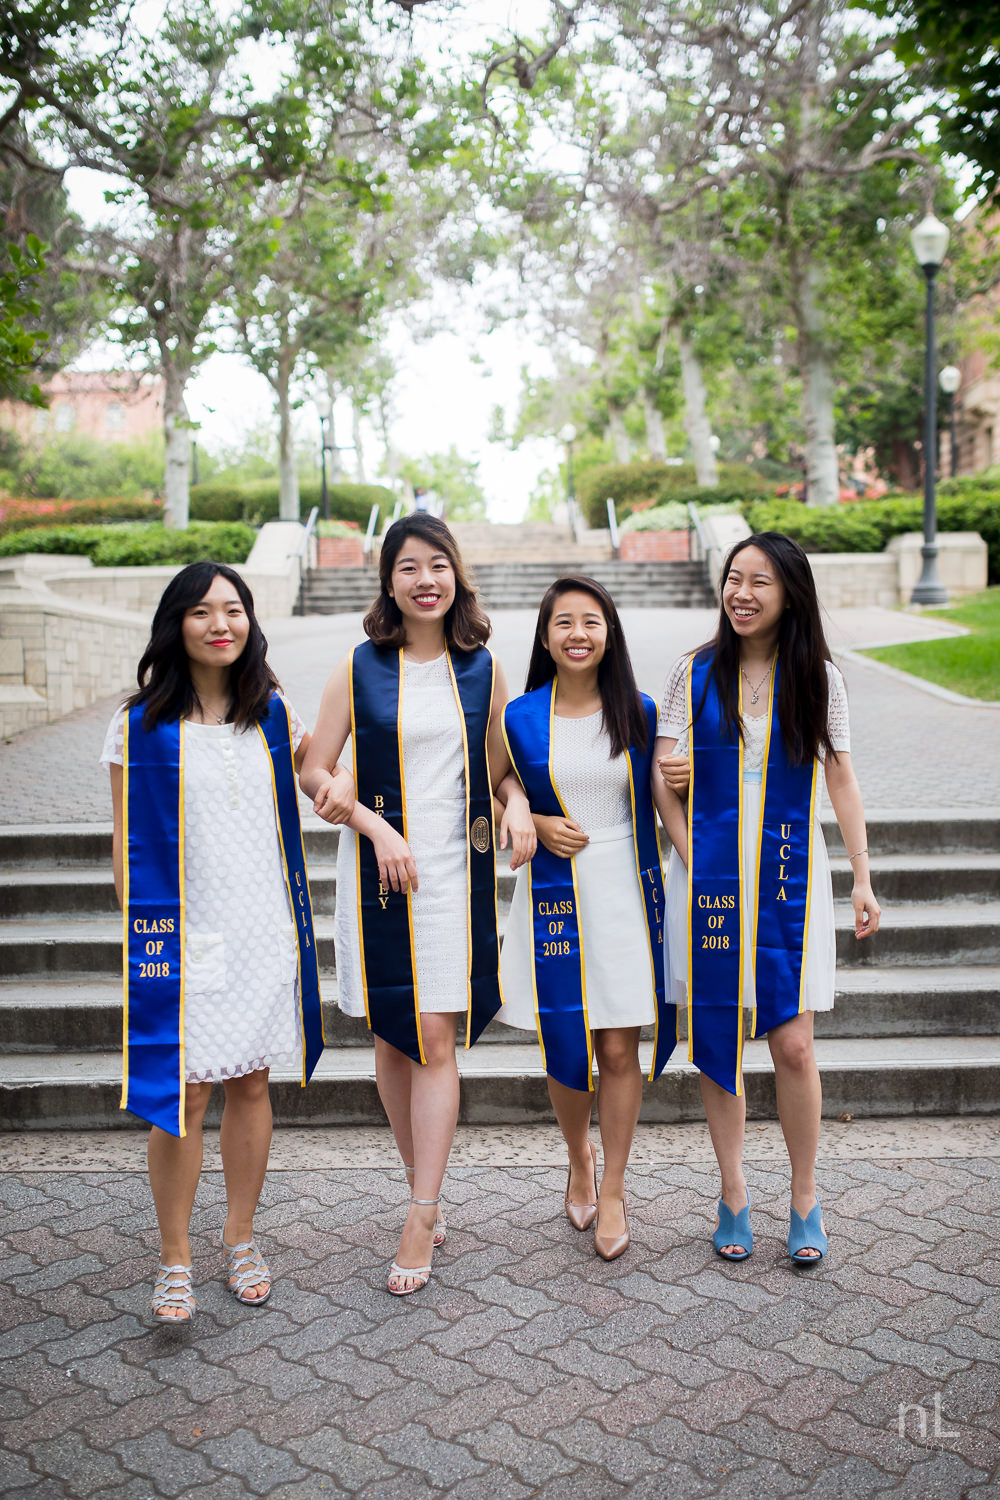 los-angeles-ucla-senior-graduation-portraits-9877.jpg